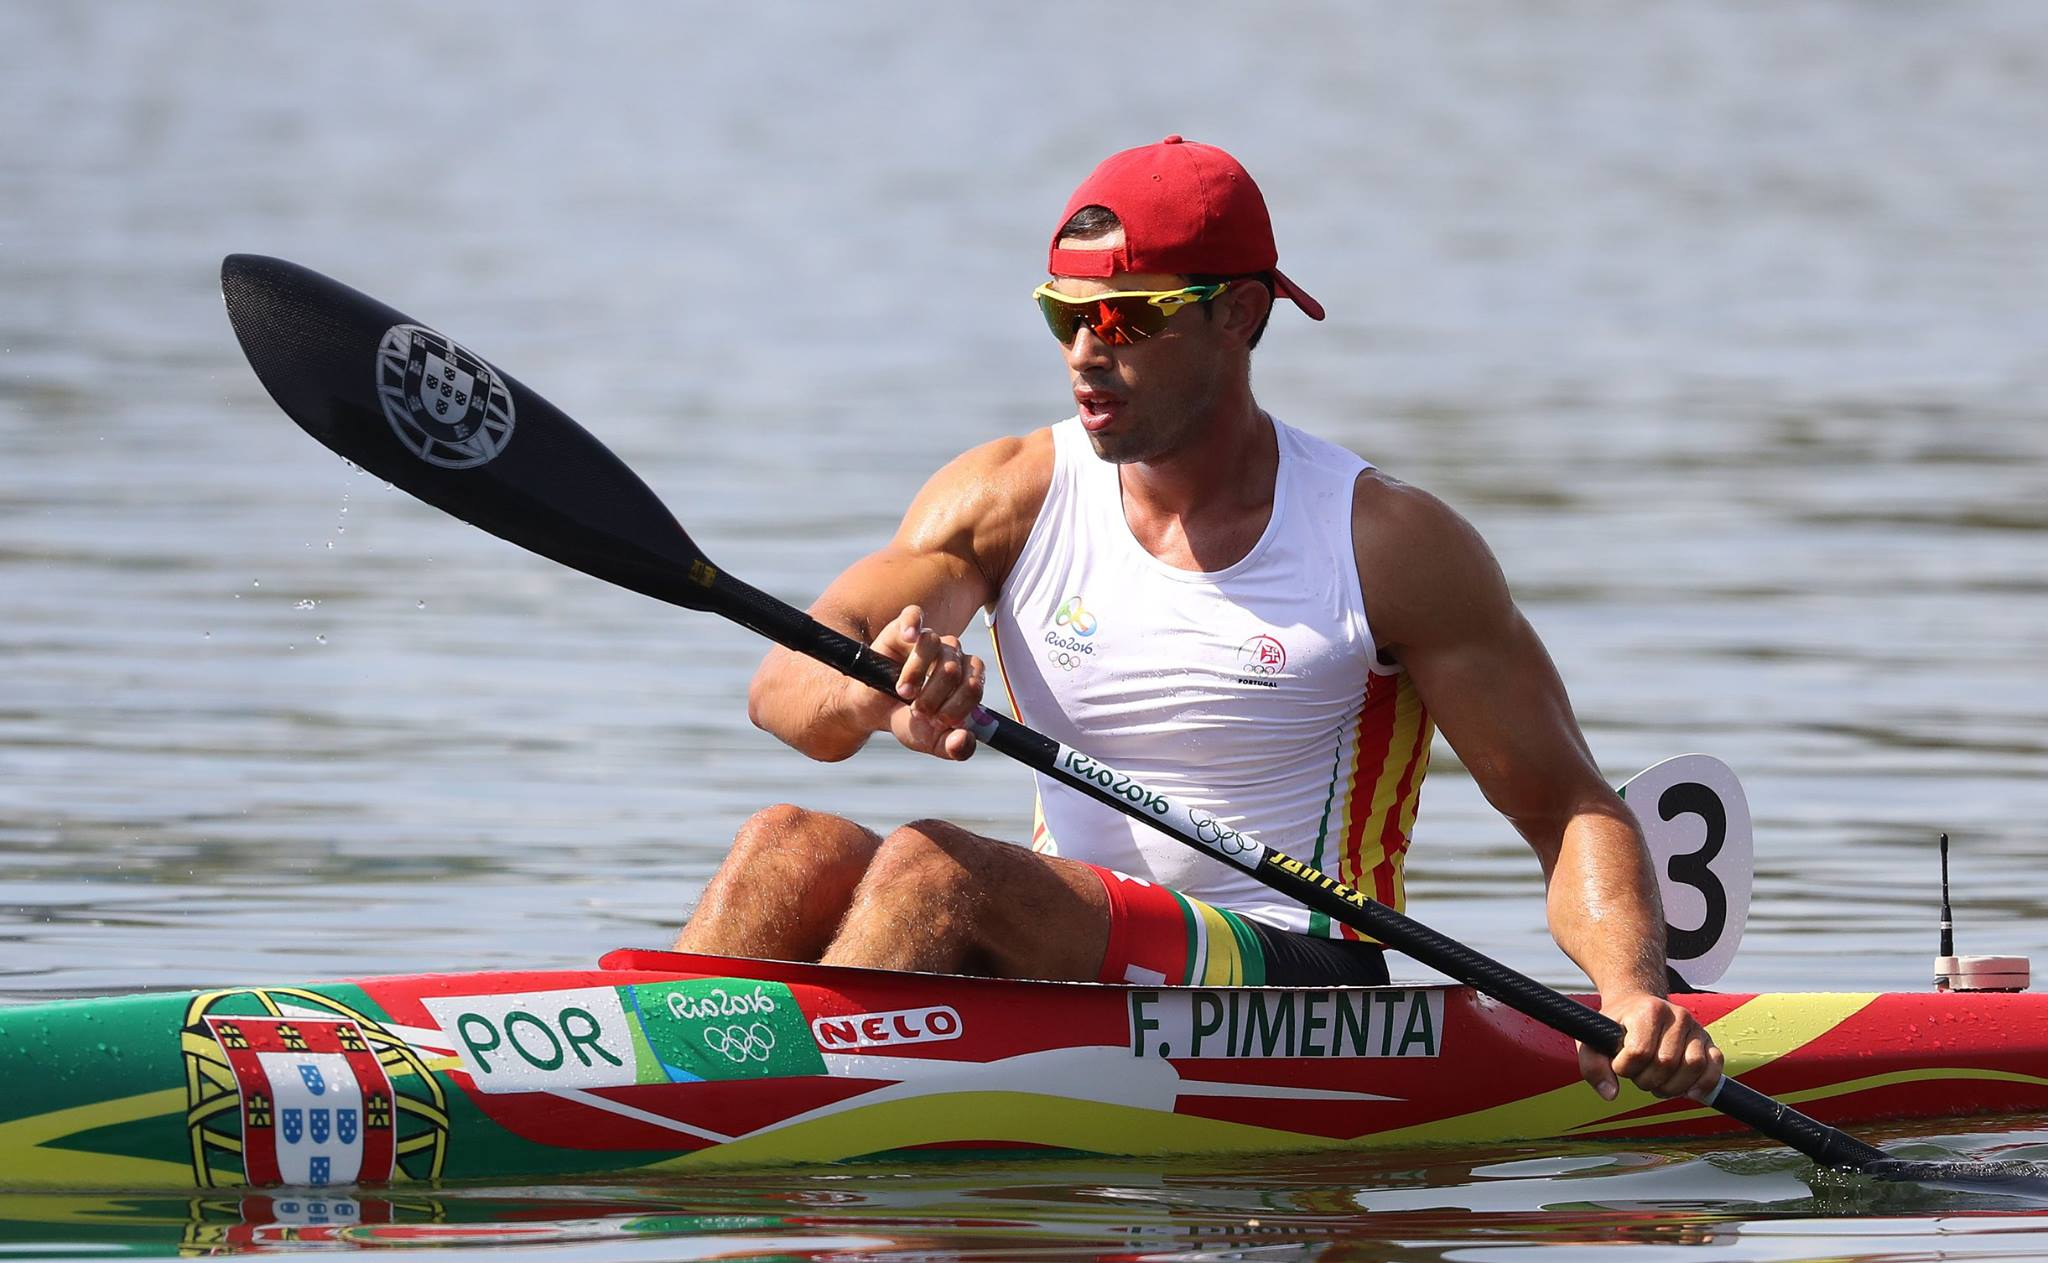 Fernando Is Also Silver Medalist In Olympics K2 1000 Meters London 2012 Along With Emanuel Silva Other Of Our Starts The Portuguese Canoeing